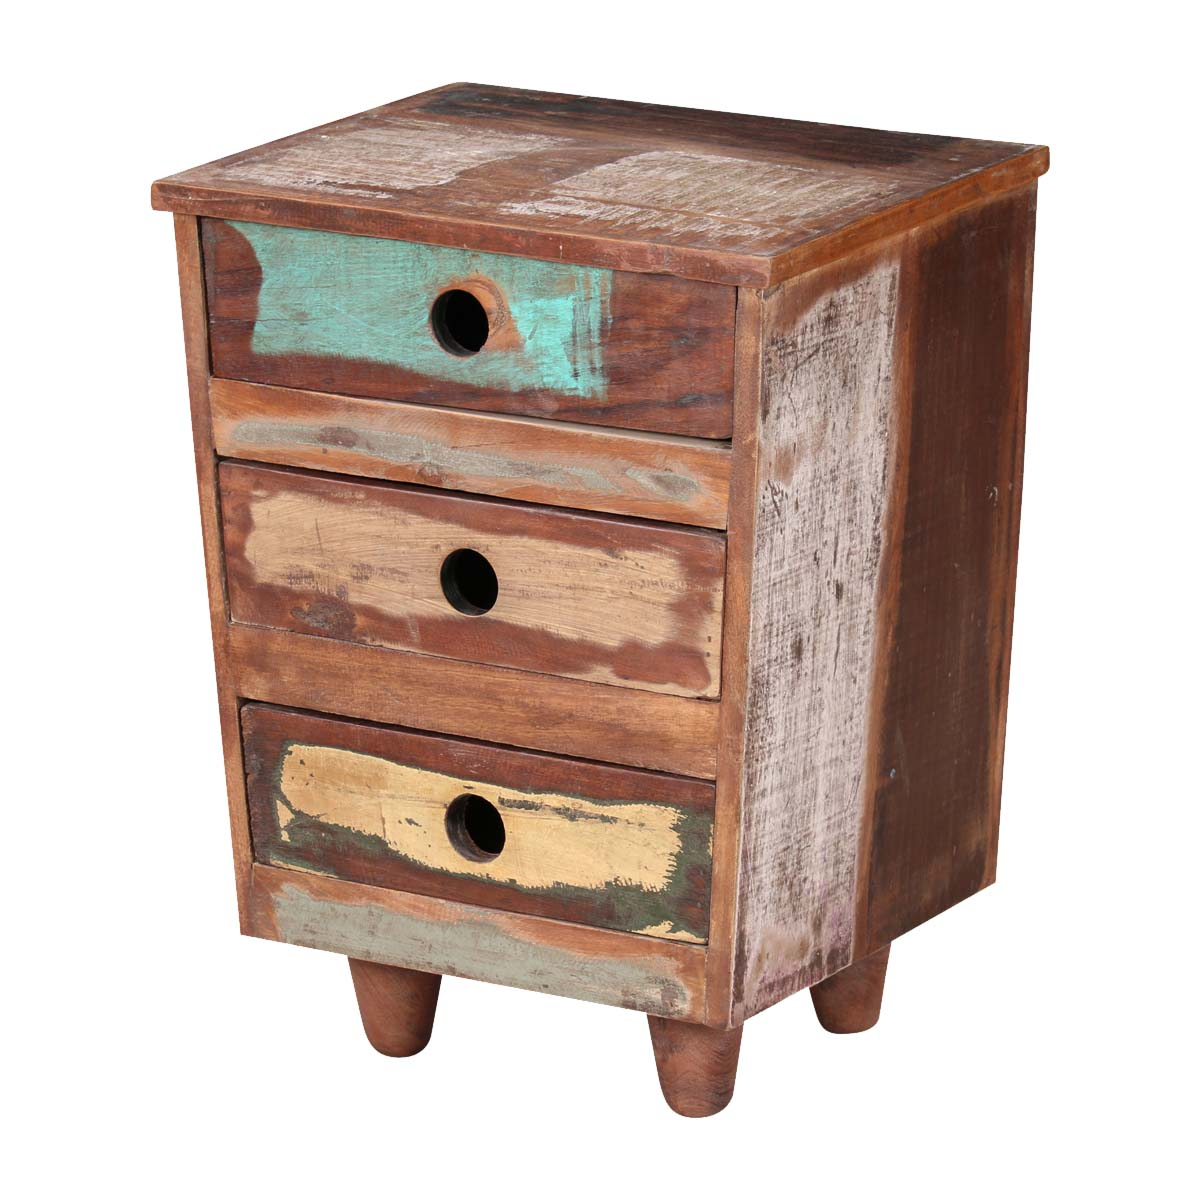 pine hurst cherry accent tables with drawer coffee table wicker sedona three reclaimed wood rustic end elkton painted yellow stanley furniture resort acme city industry compact